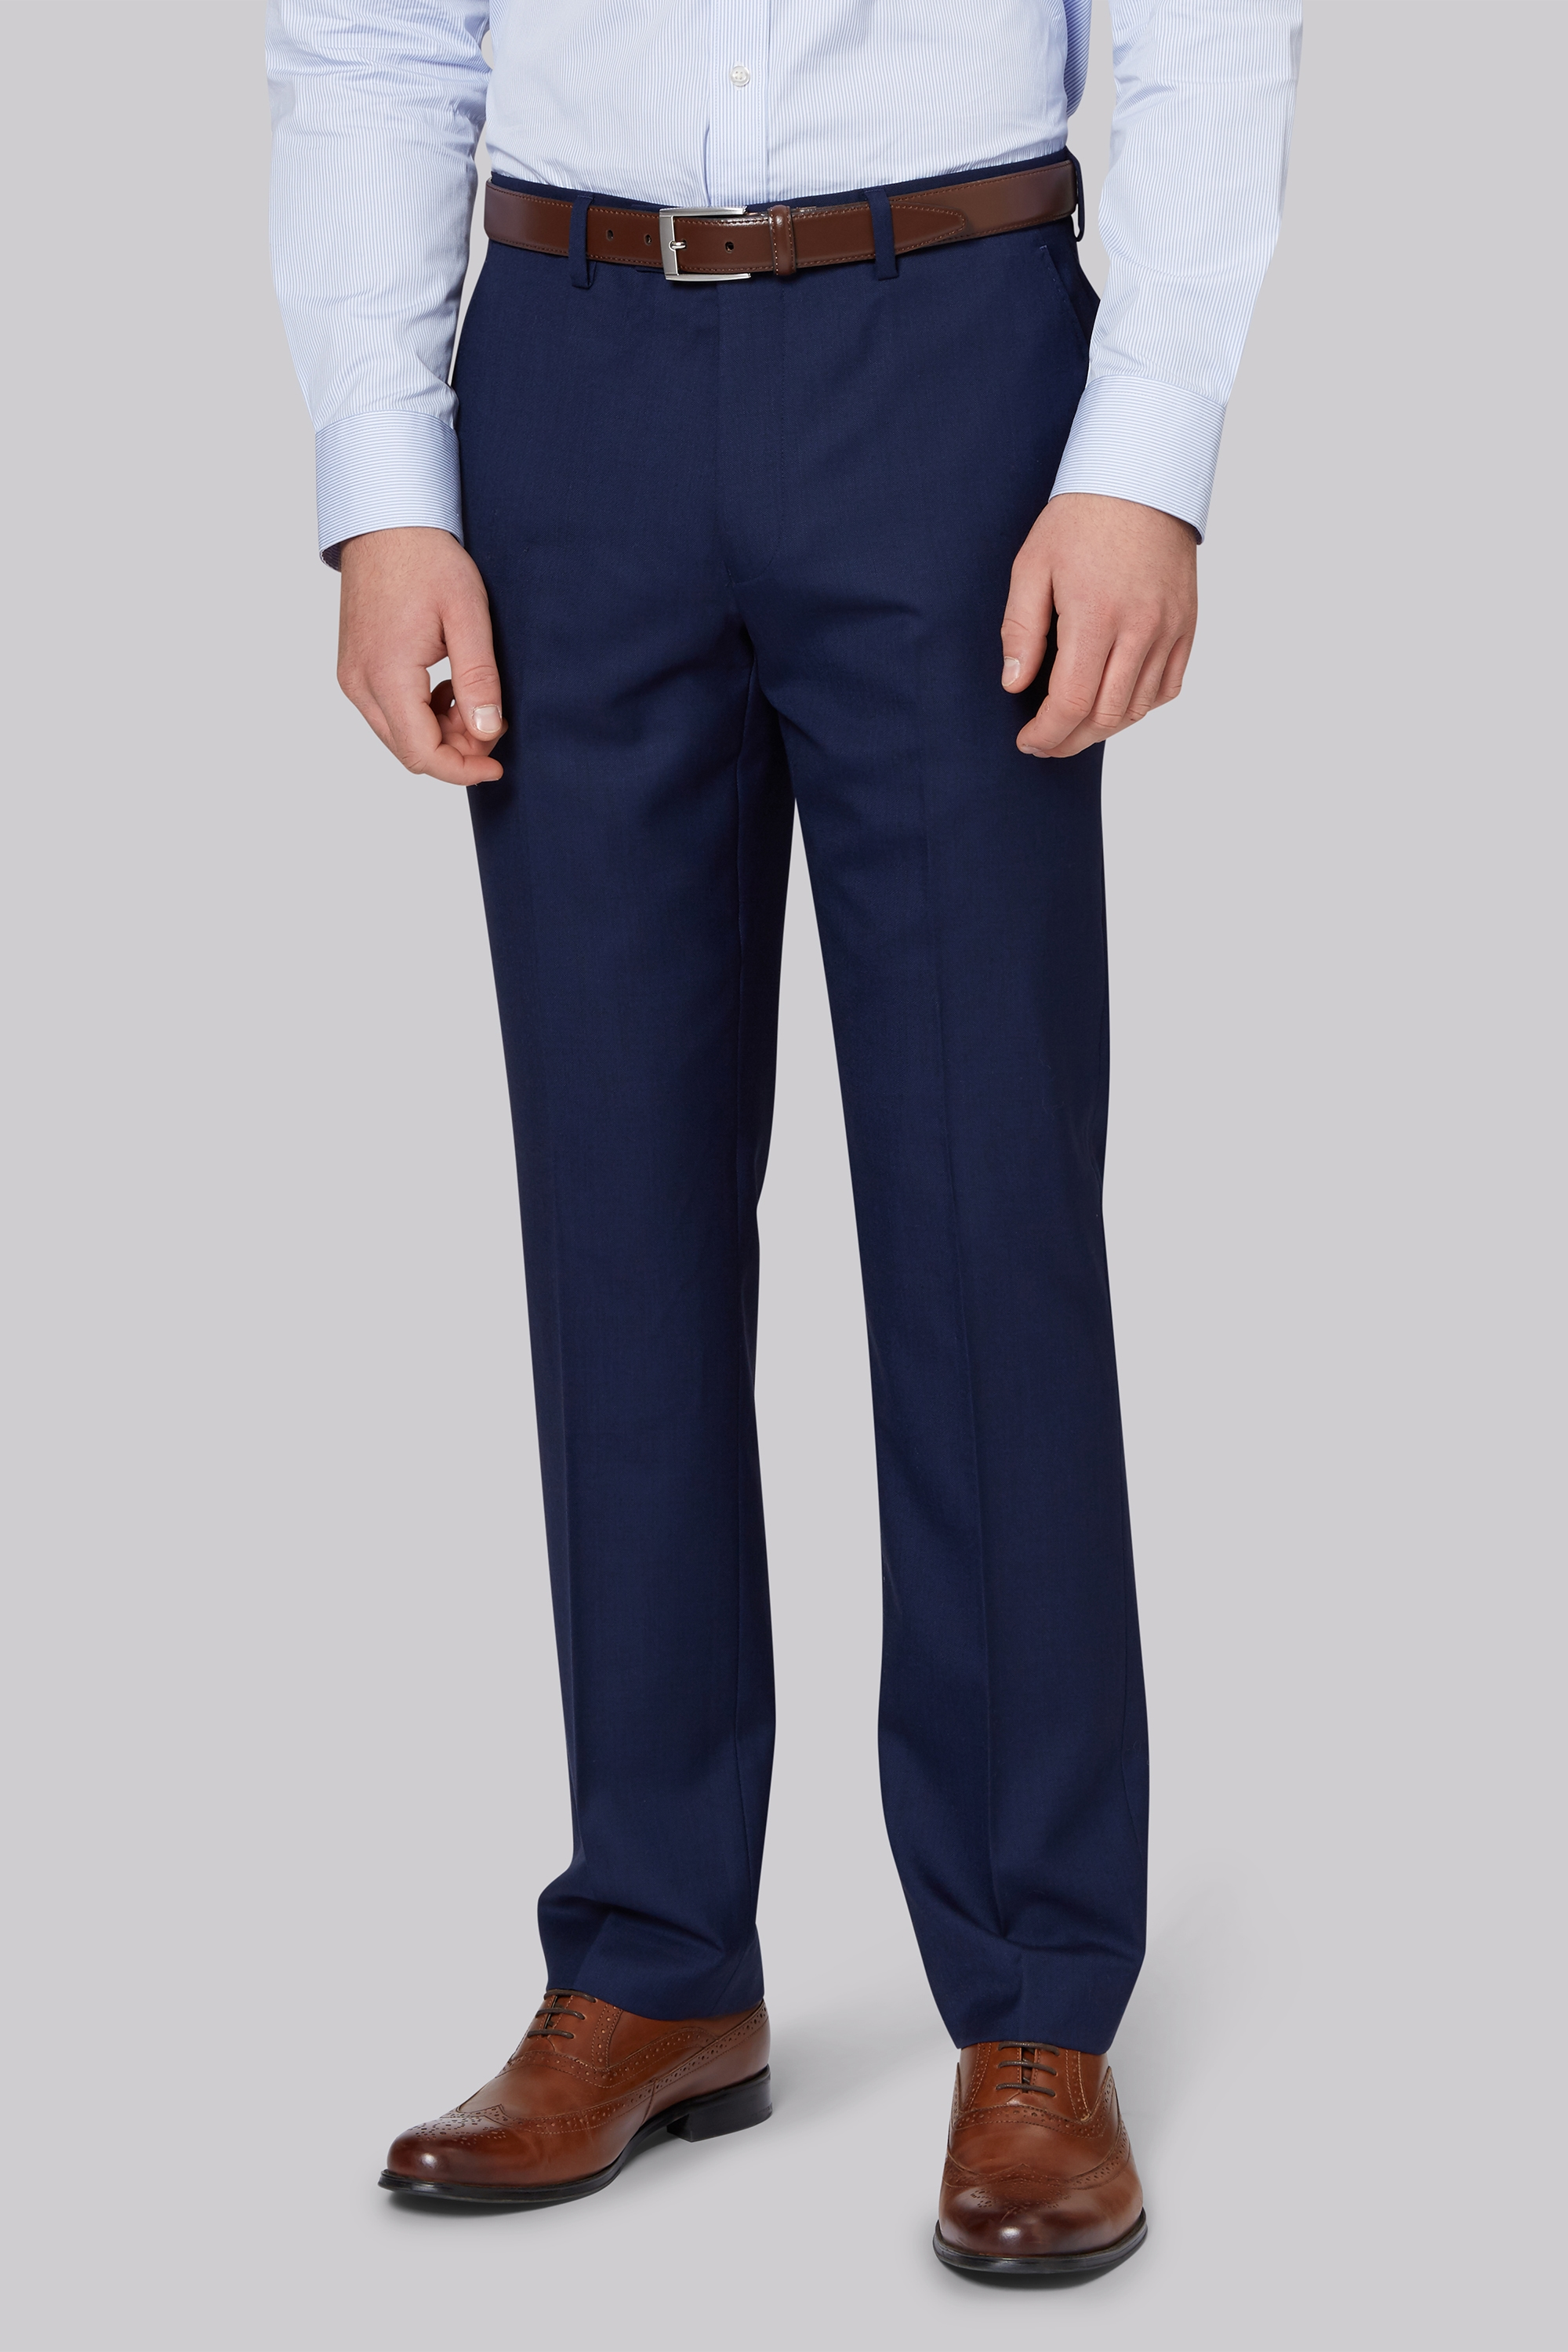 Moss Bros Gold Tailored Fit Navy Two Tone Trousers